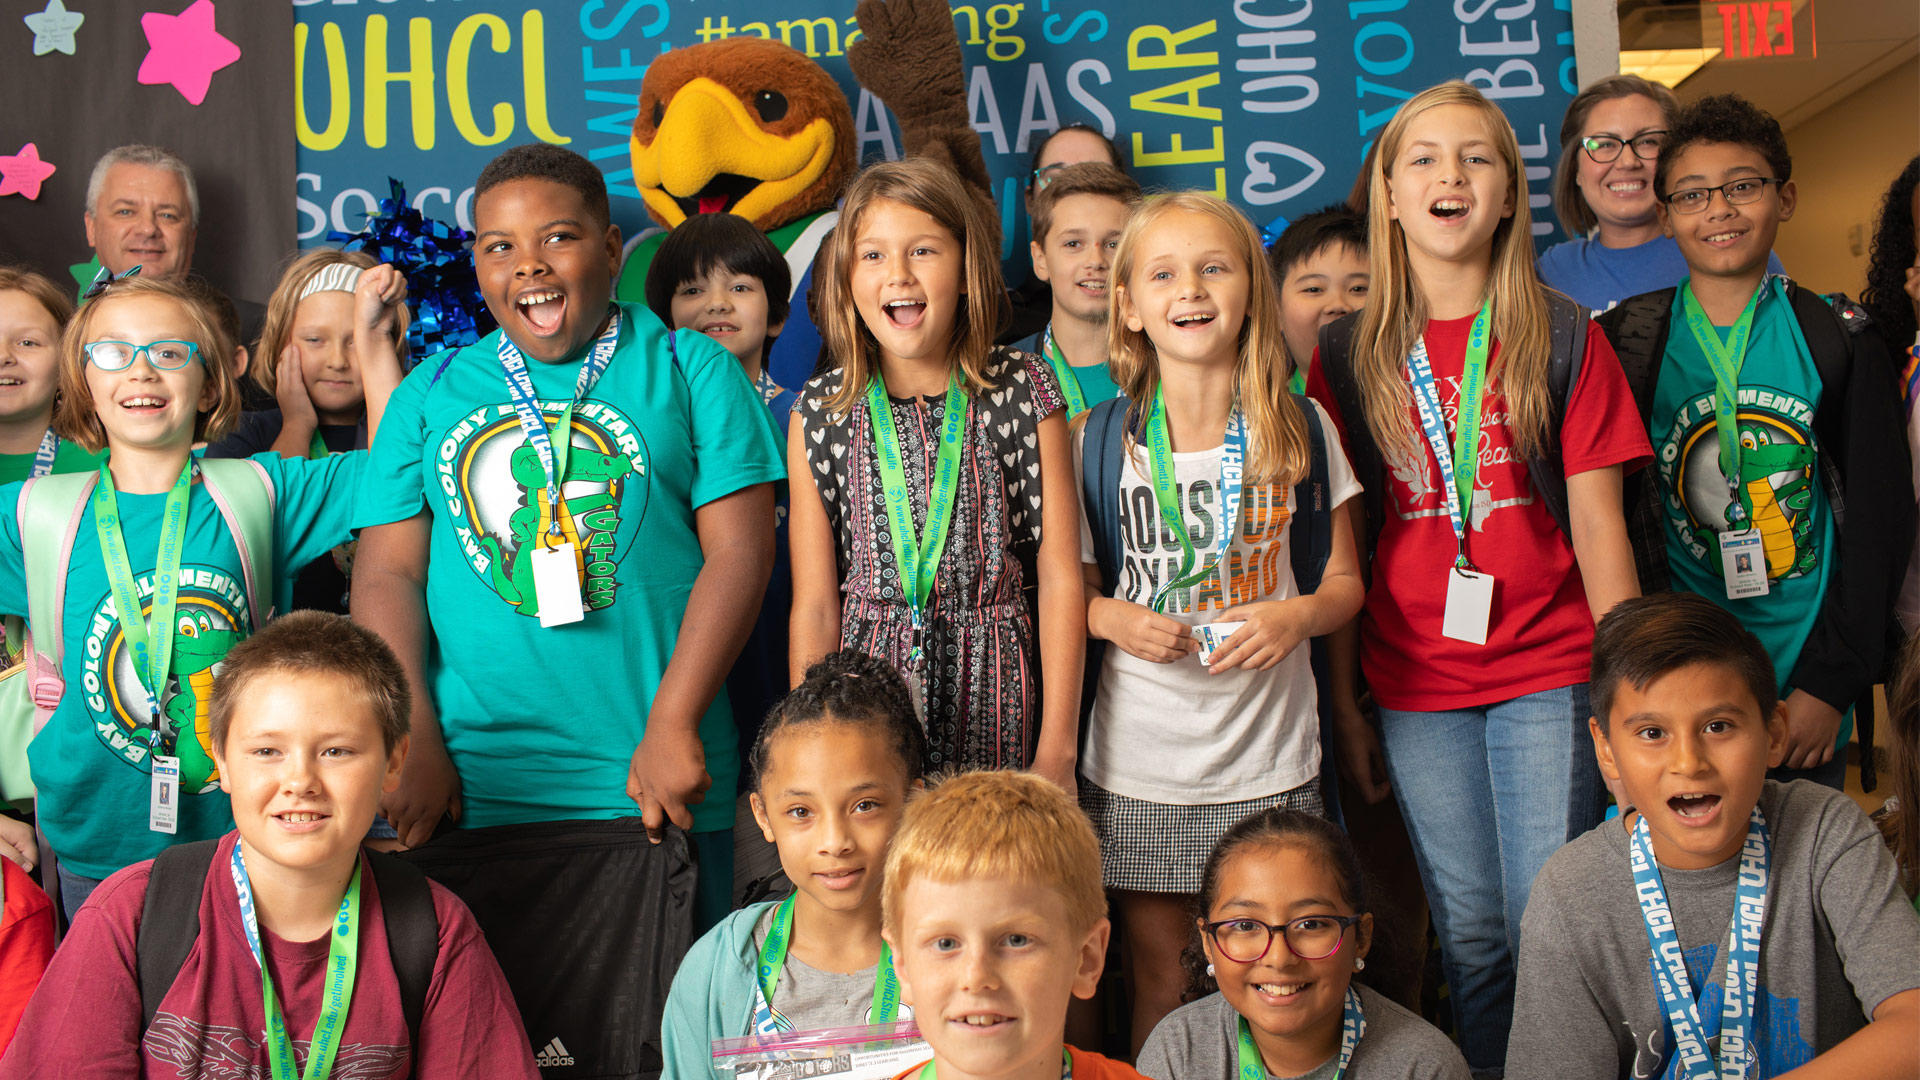 Dickinson ISD and UHCL begin partnership to offer enrichment to gifted students